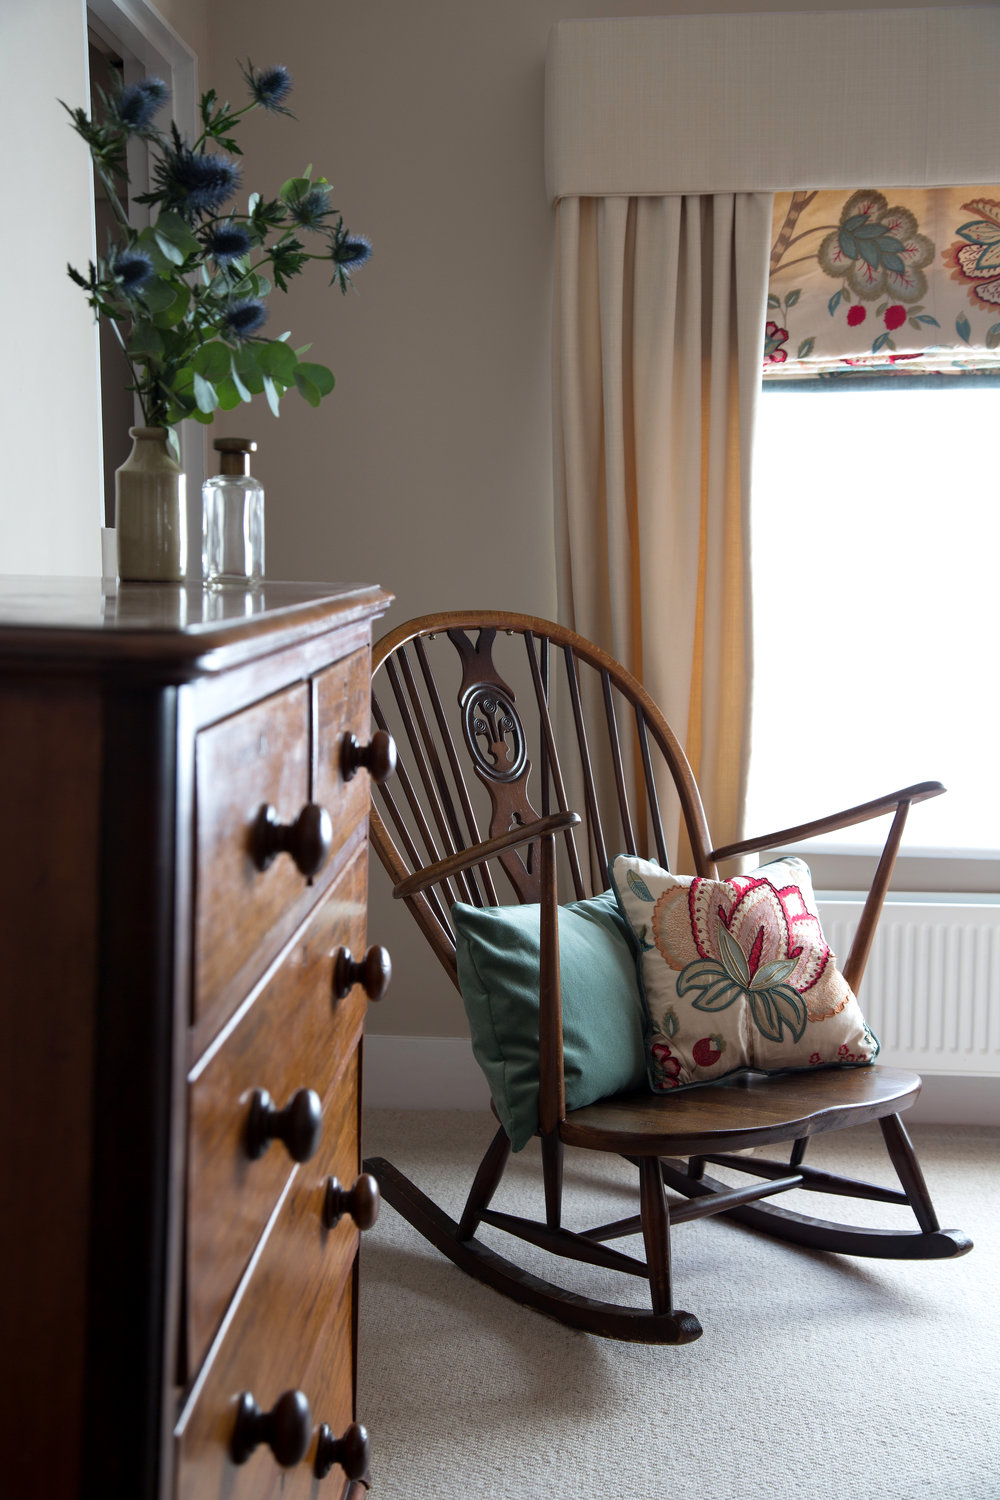 Gorgeous Wooden Rocking Chair in a Grade II Listed Home in Battle East Sussex – Interior Design by Smartstyle Interiors